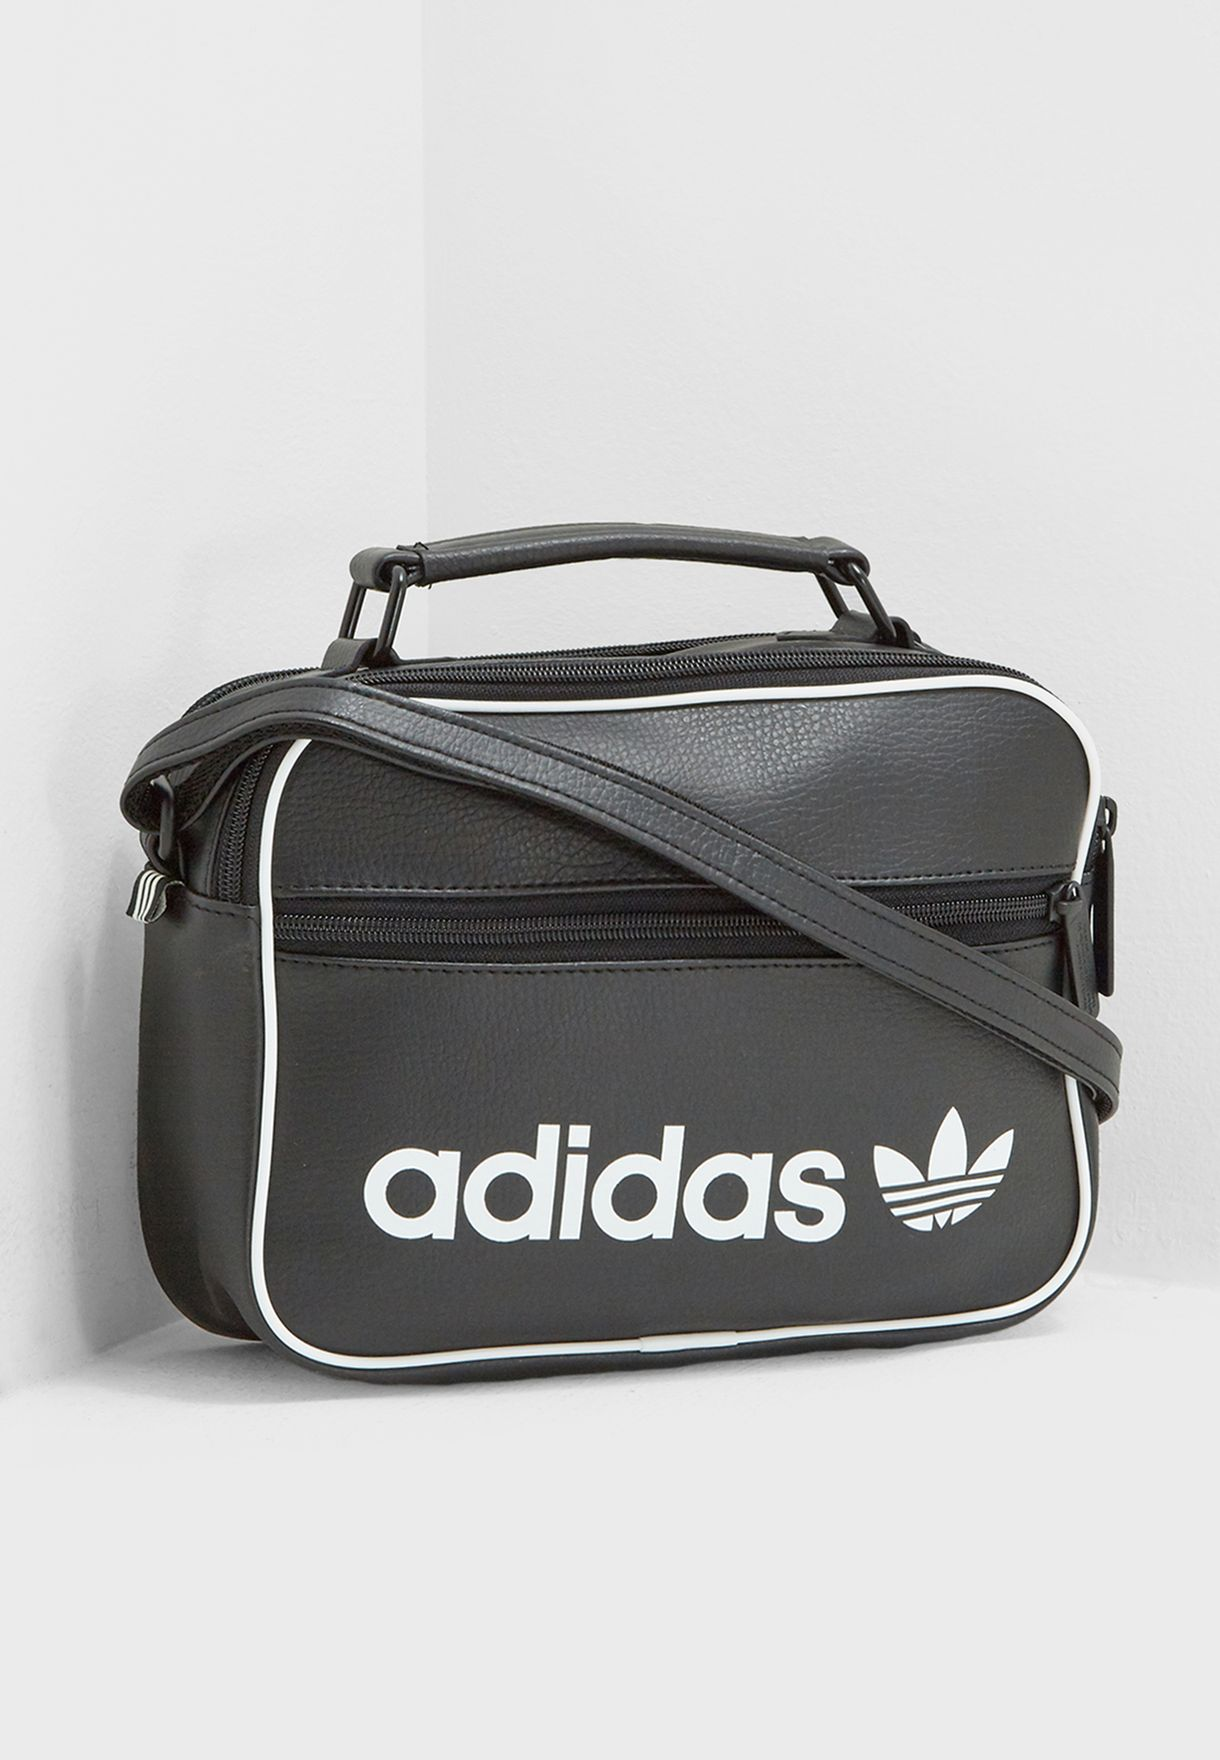 0fa834f52f08 Shop adidas Originals black Mini Airliner Vintage Messenger DH1004 ...